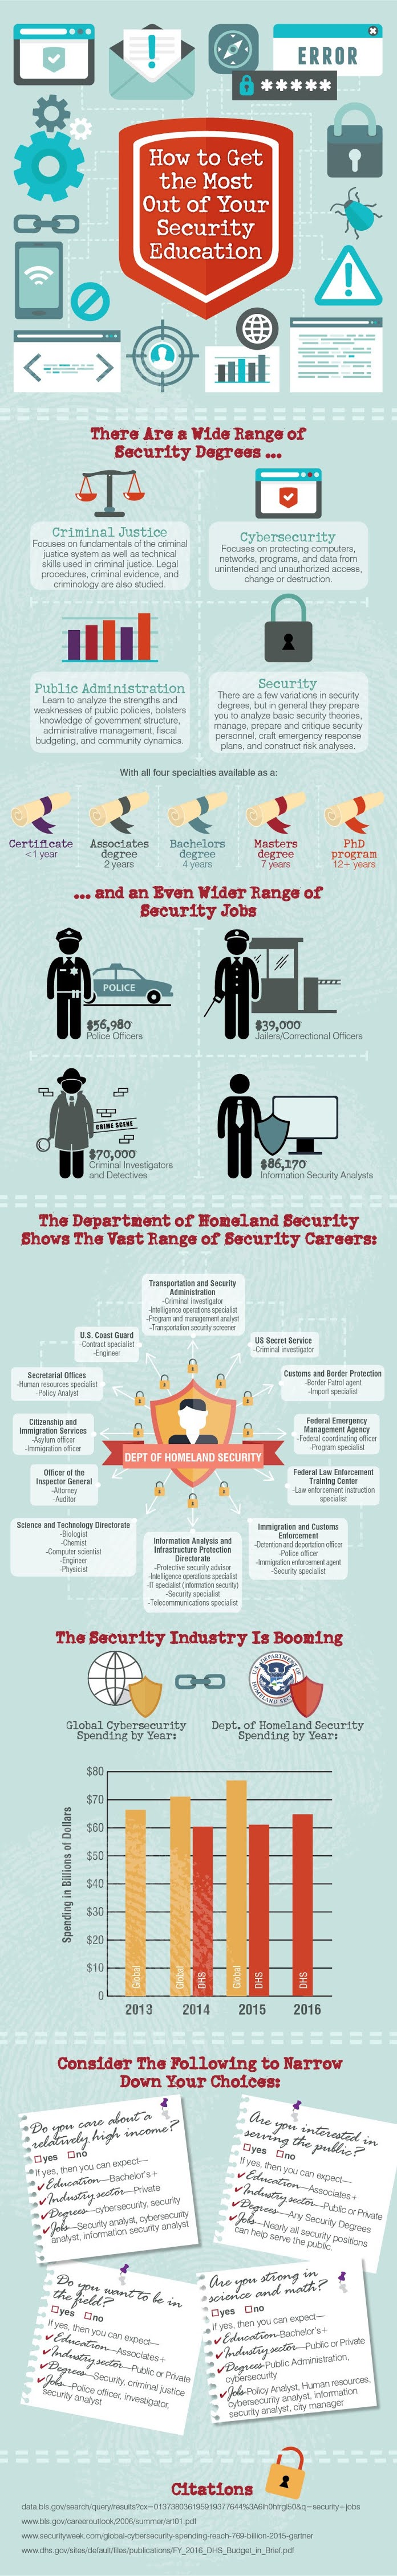 How To Get The Most Out Of Your Security Degree #infographic